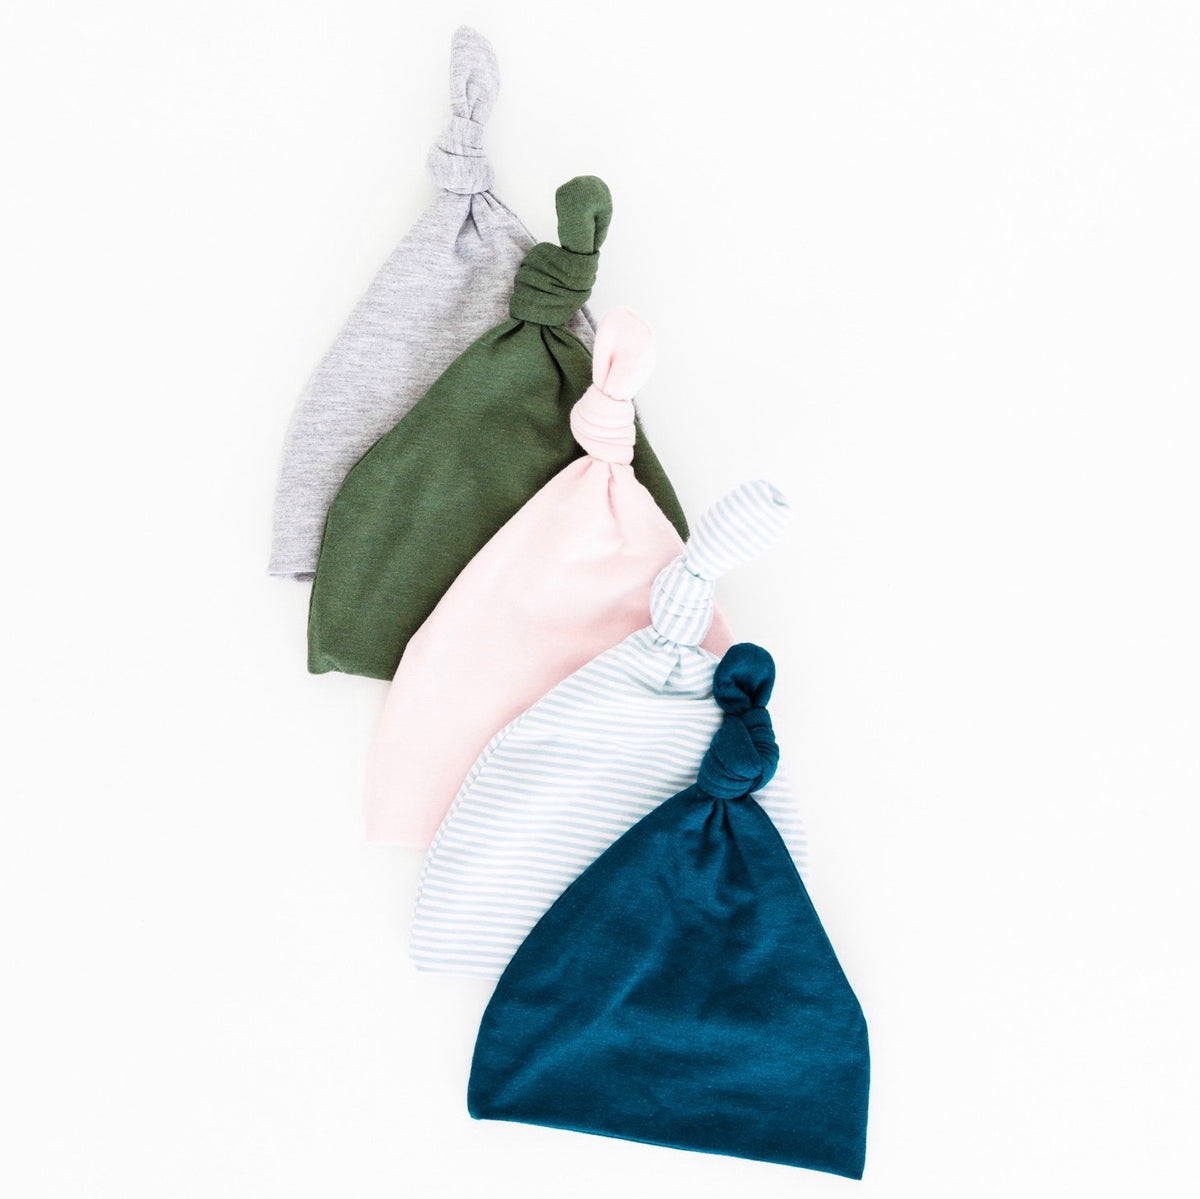 Our top knot hats provide baby with the extra warmth and comfort they need! They are made from our bamboo fabric that is buttery soft, lightweight and breathable. Ethically made in canada